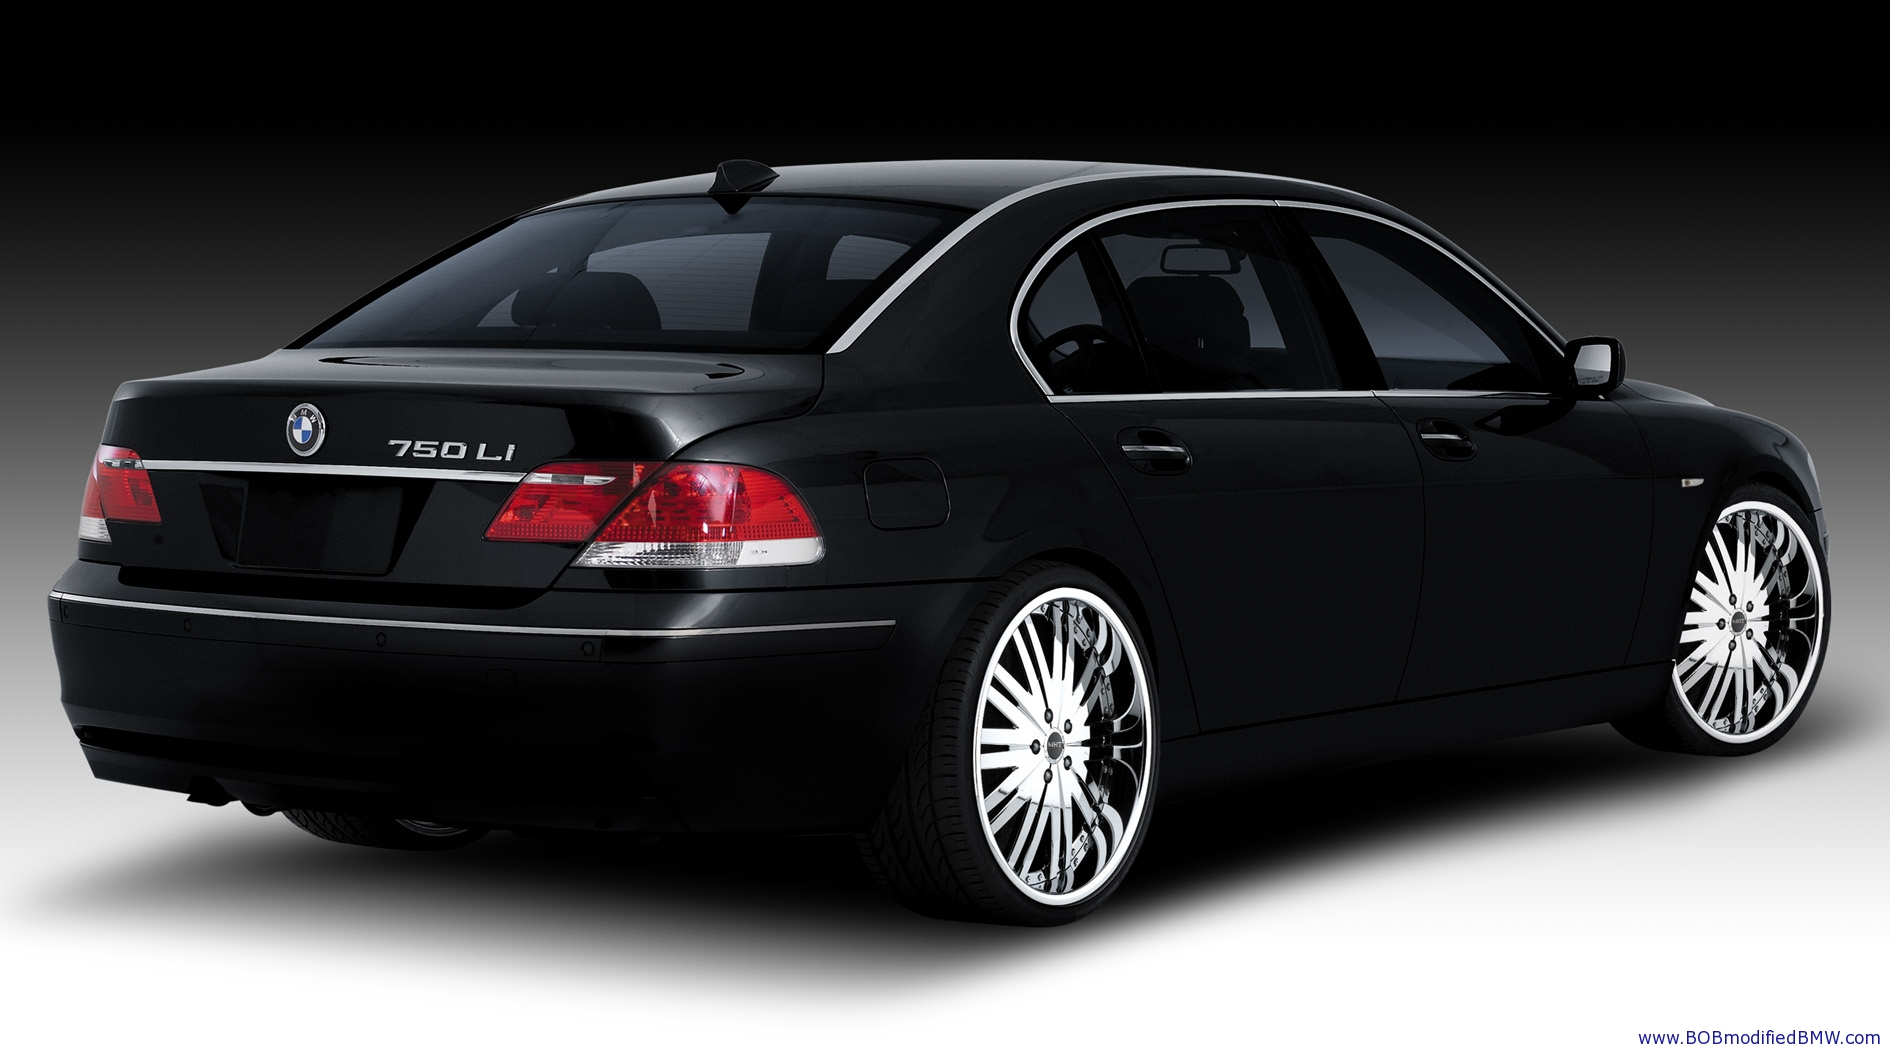 Bmw 750. Best photos and information of model.